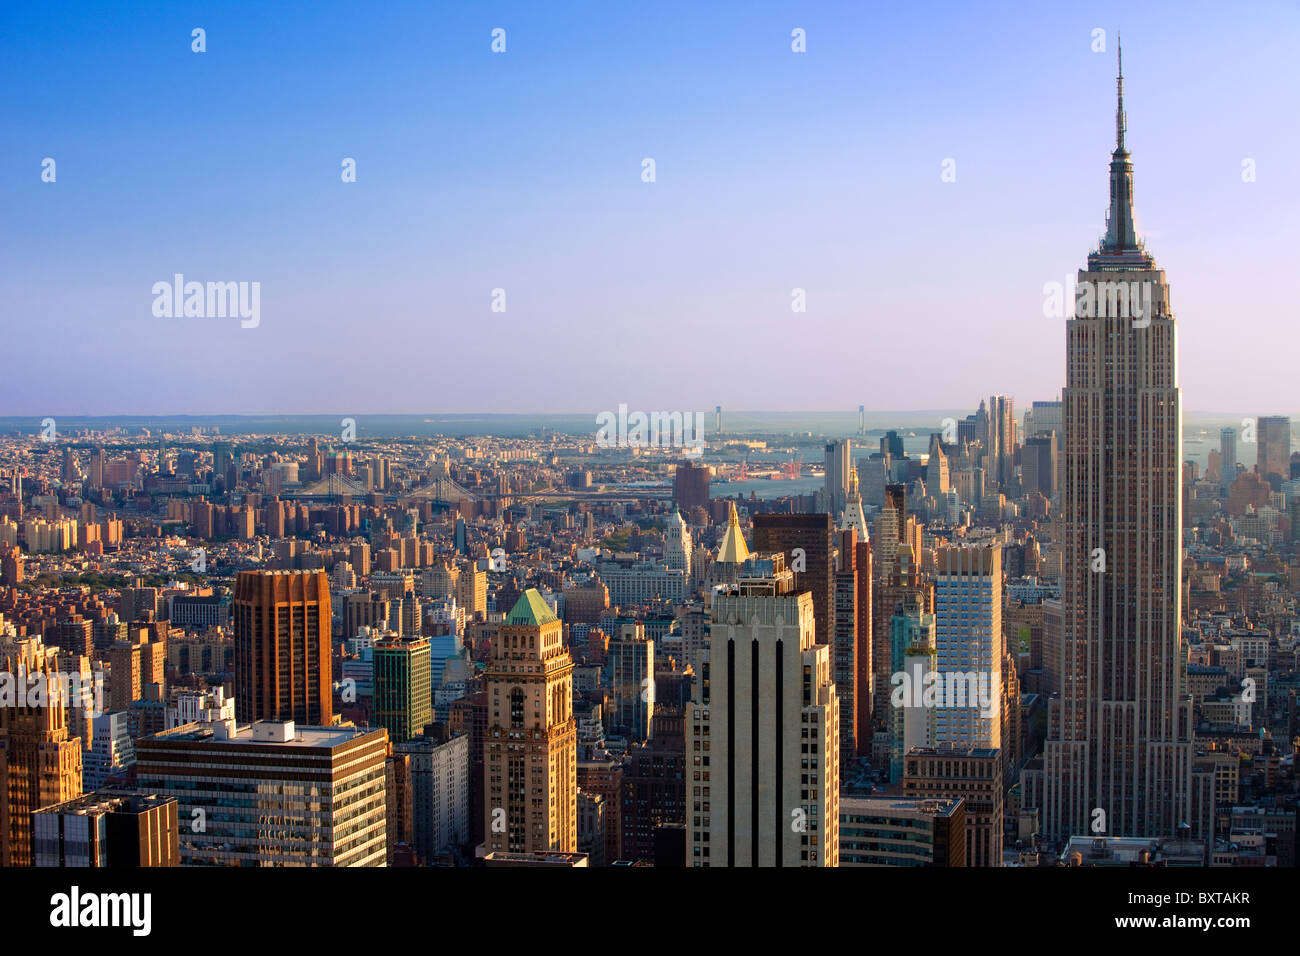 La fin de l'après-midi vue de l'Empire State Building et les toits de Manhattan, New York City USA Photo Stock